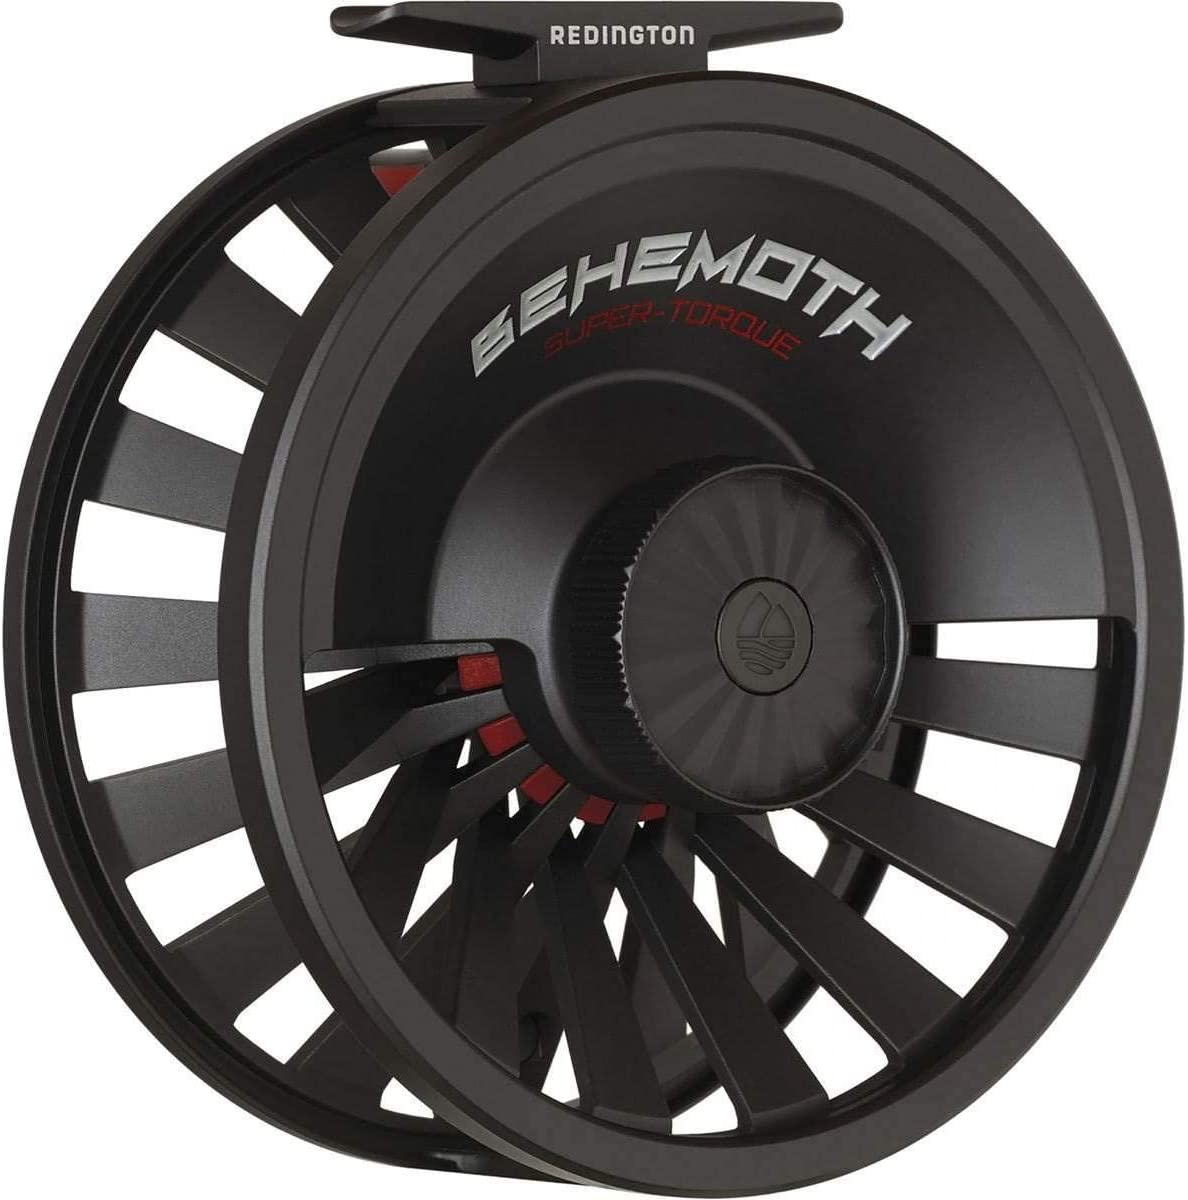 Best Fly Fishing Reel : Redington Behemoth Fly Reel